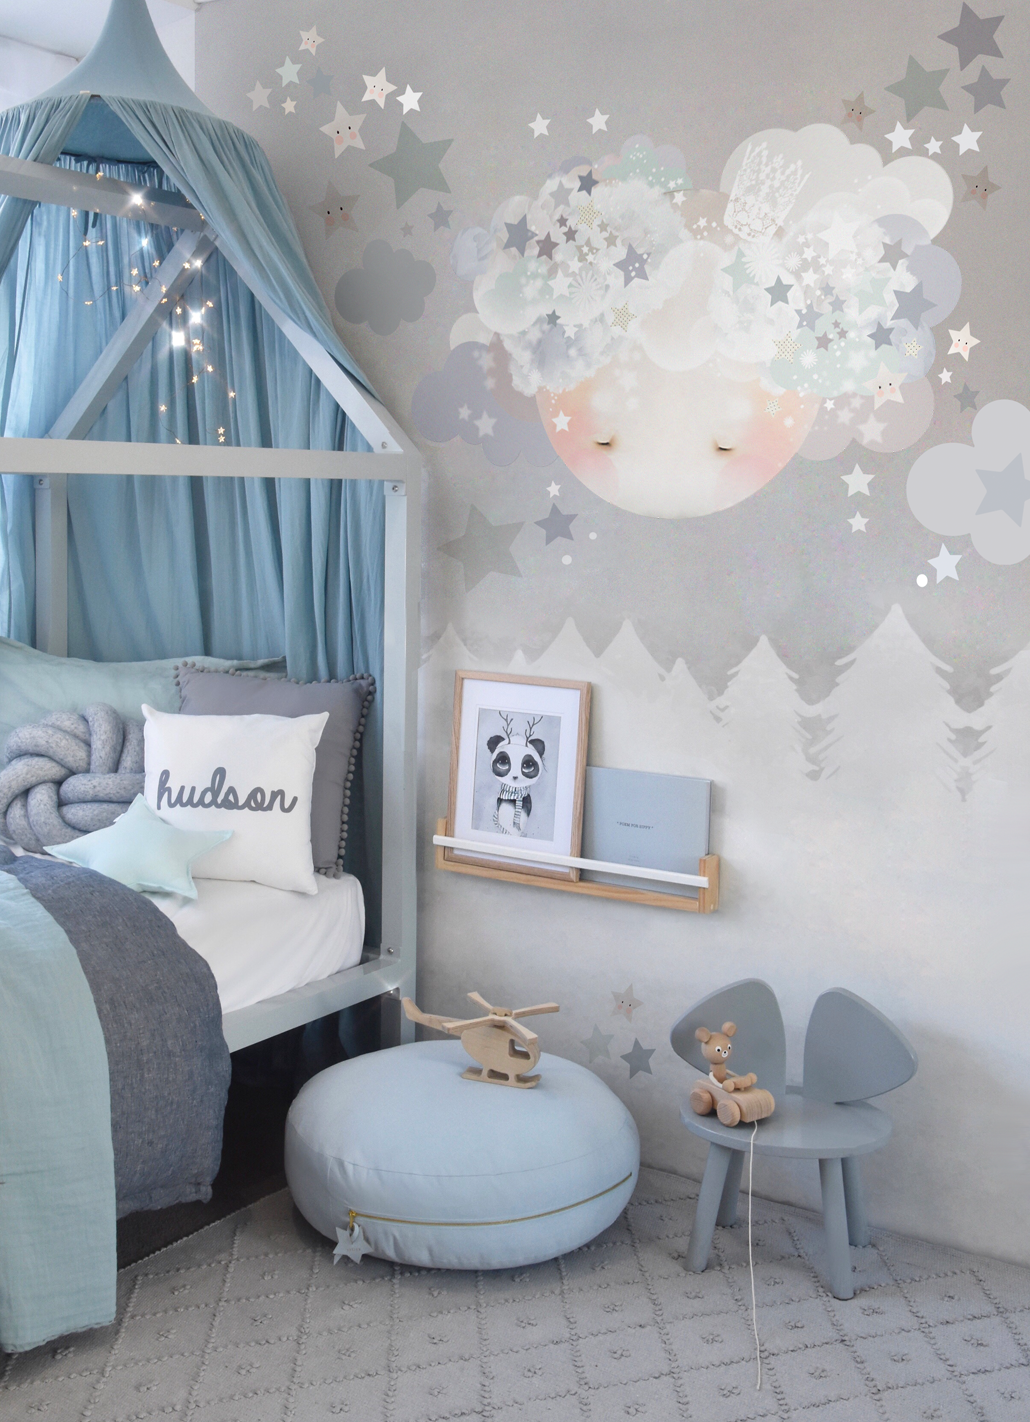 Sleepy Moon Wall Sticker - Blues